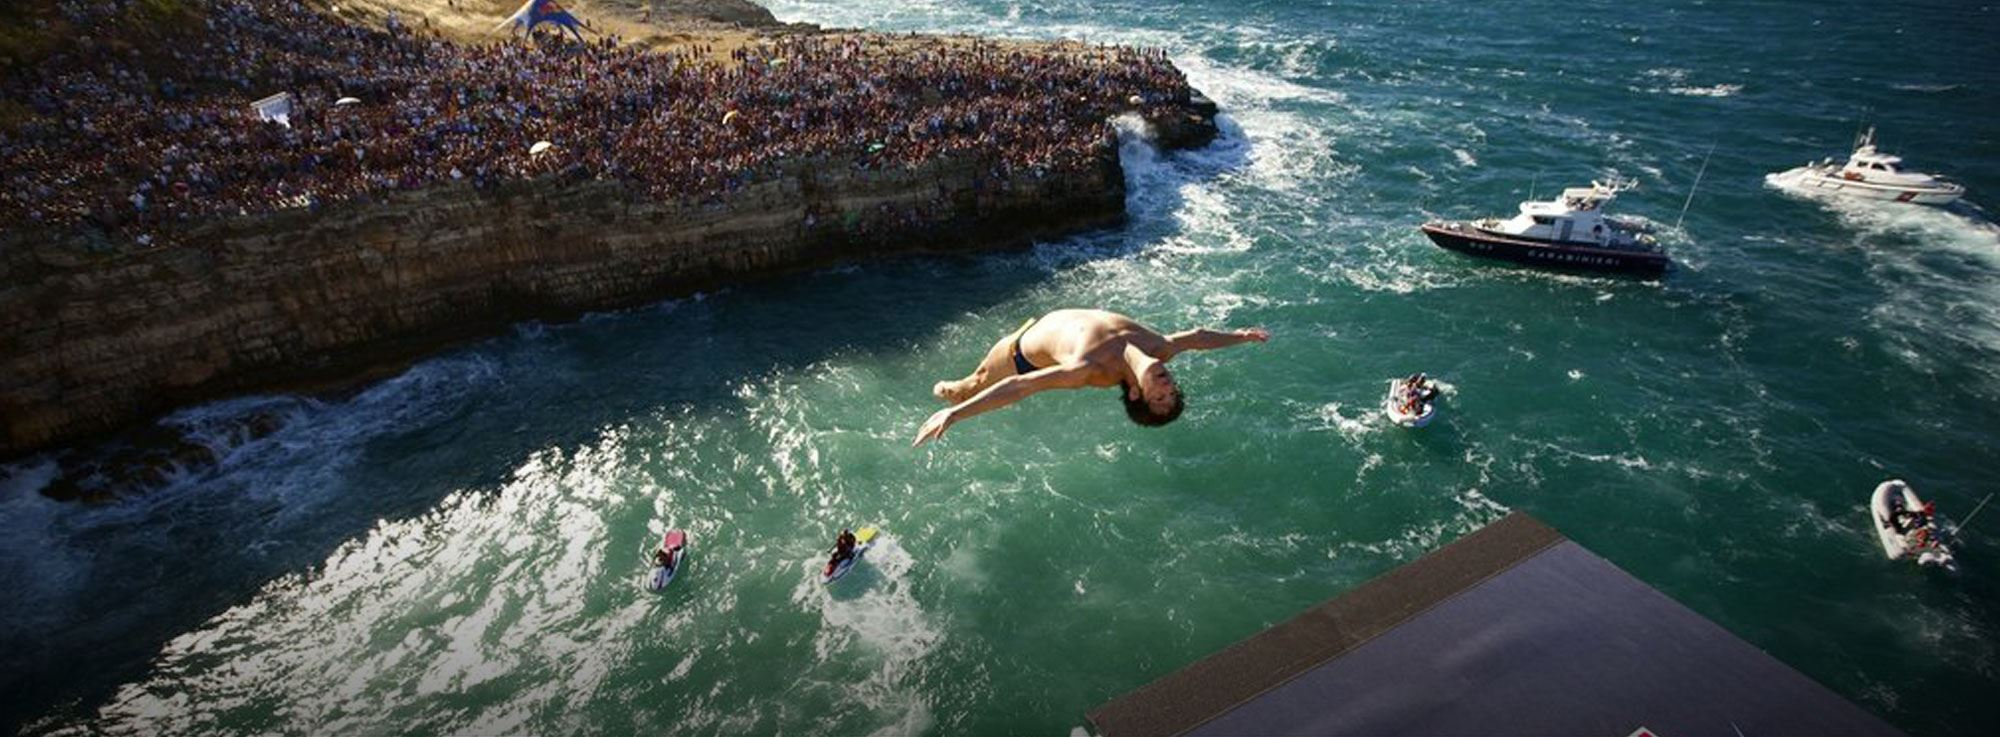 Polignano: Red Bull Cliff Diving